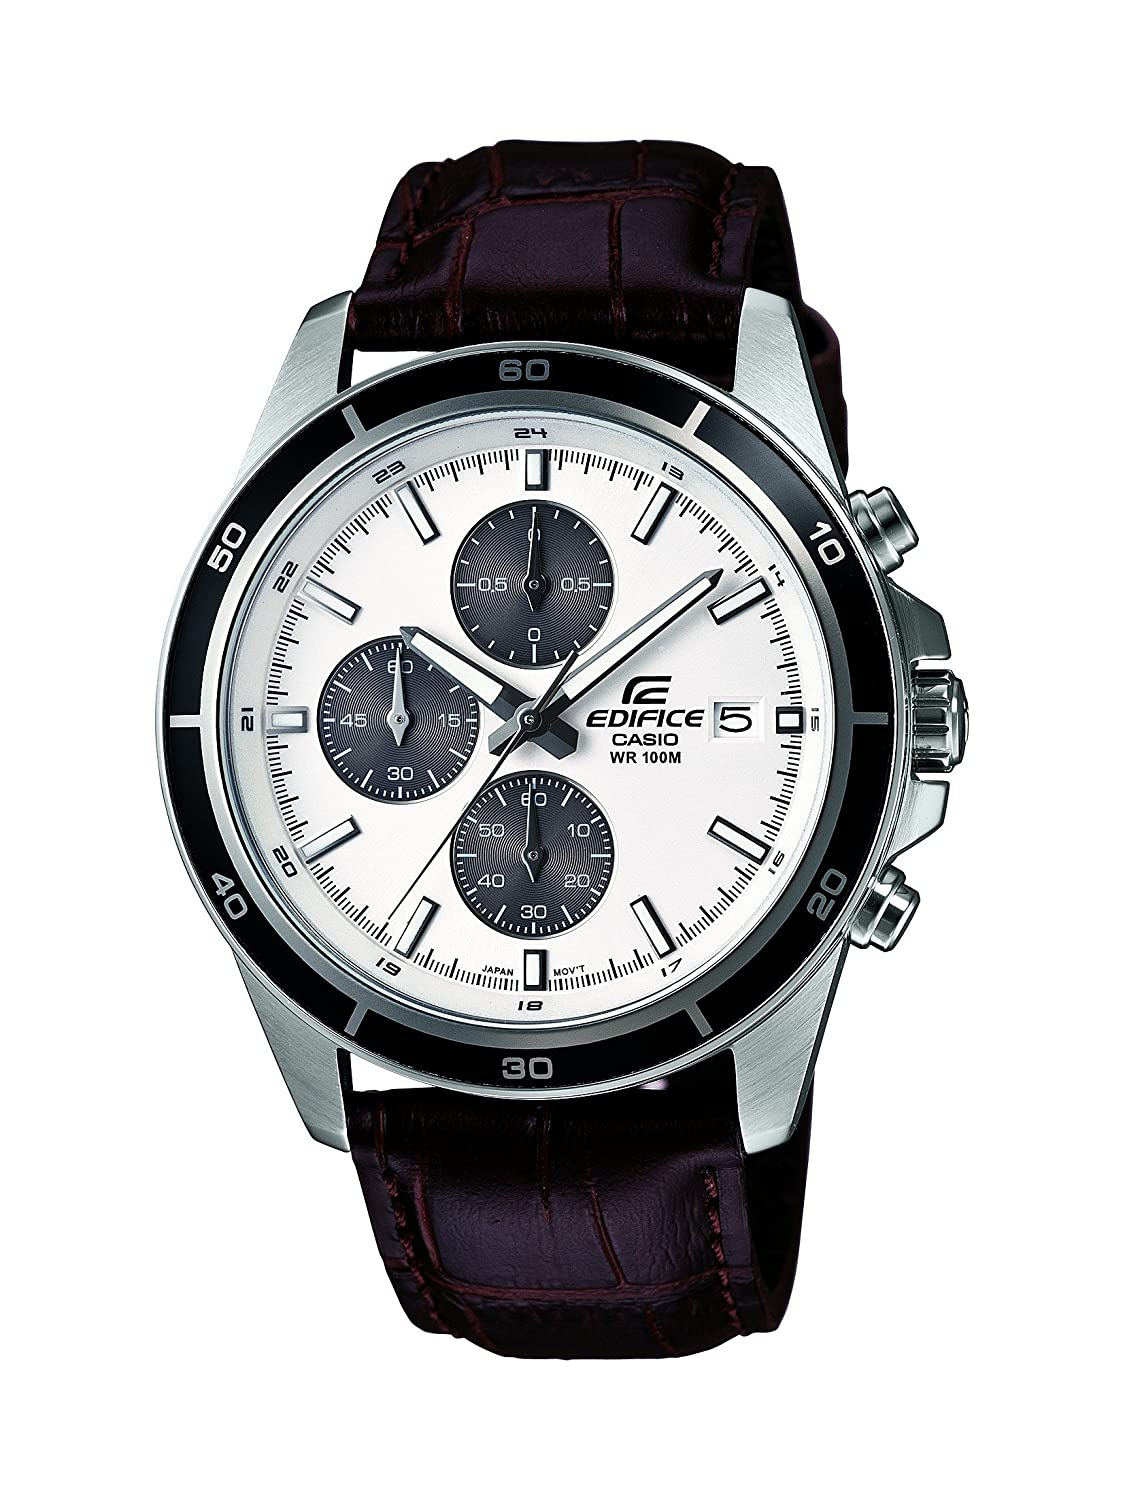 Buy Casio Edifice Chronograph White Dial Mens Watch Efr 526l 7avudf Expedition E6681 Rose Gold Black Ex097 Online At Low Prices In India